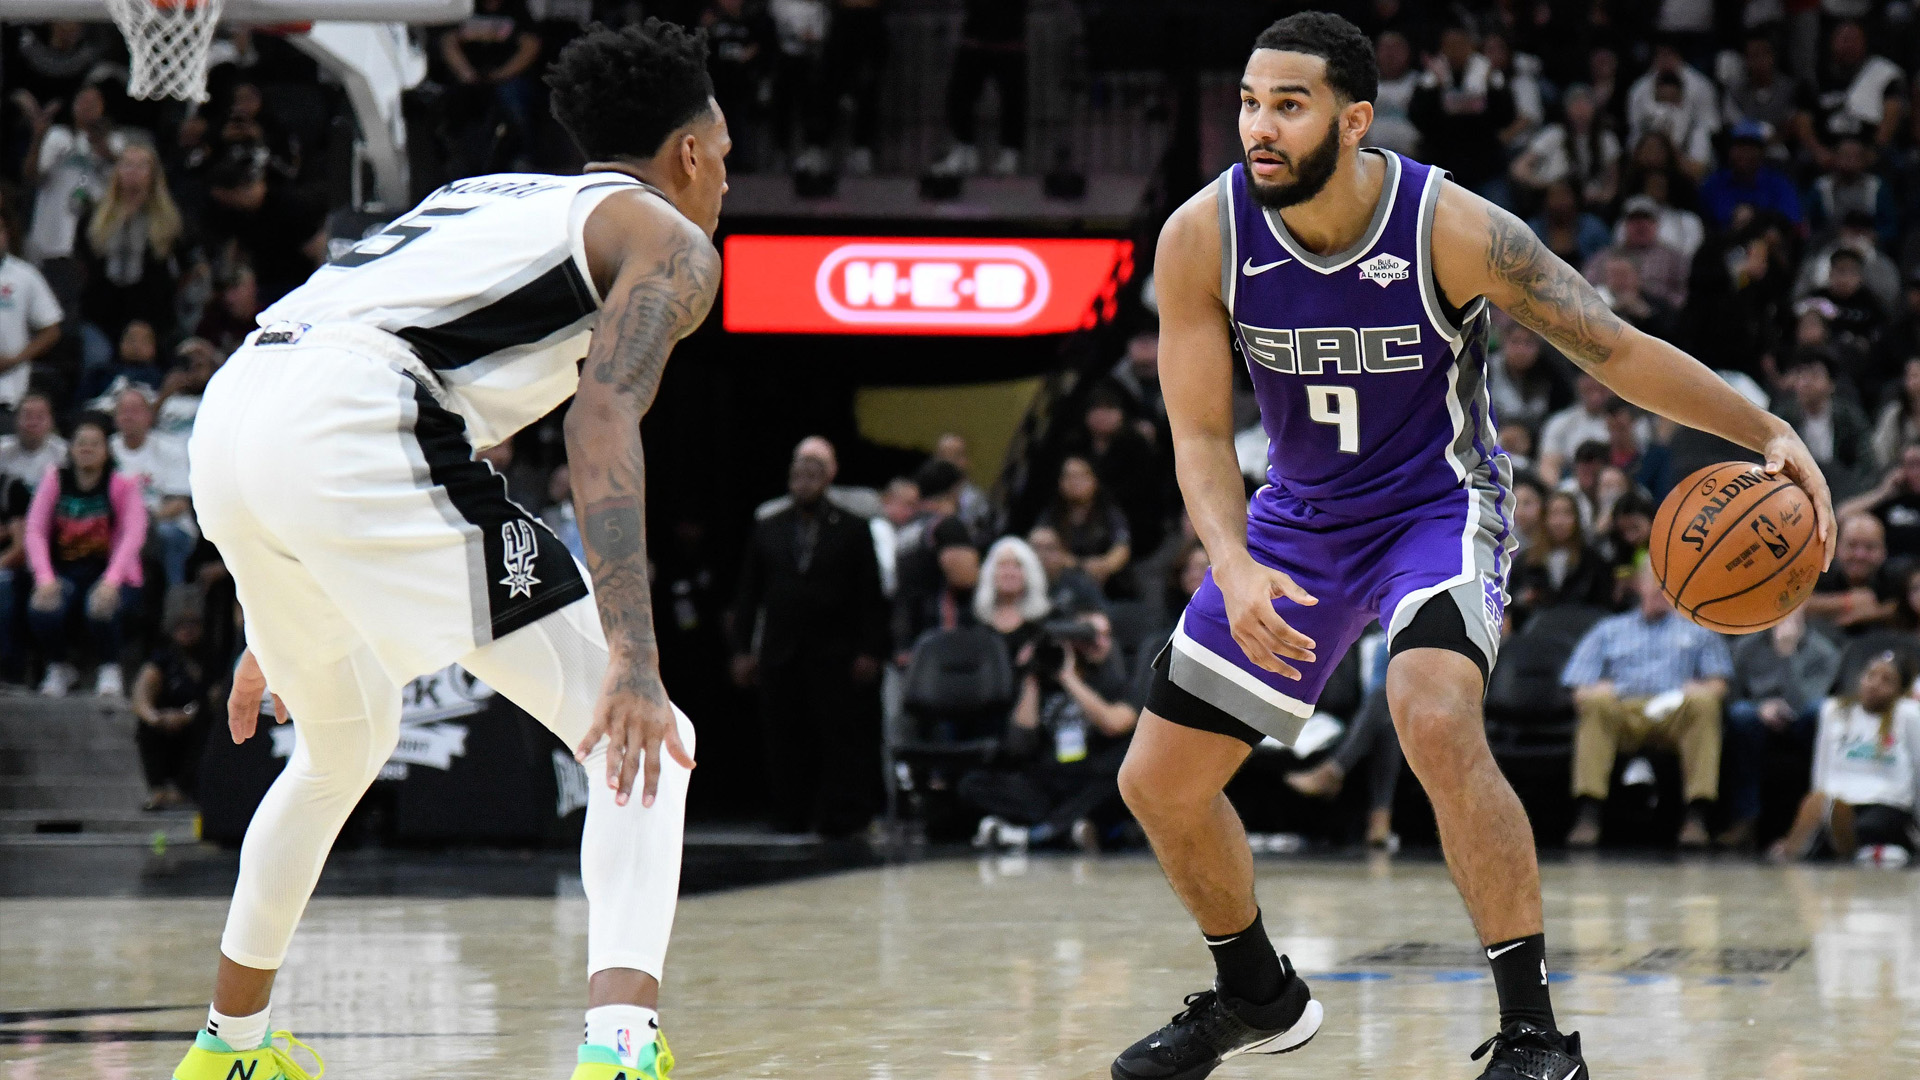 Cory Joseph's journey from Canada to steady leader sets tone for Kings | RSN